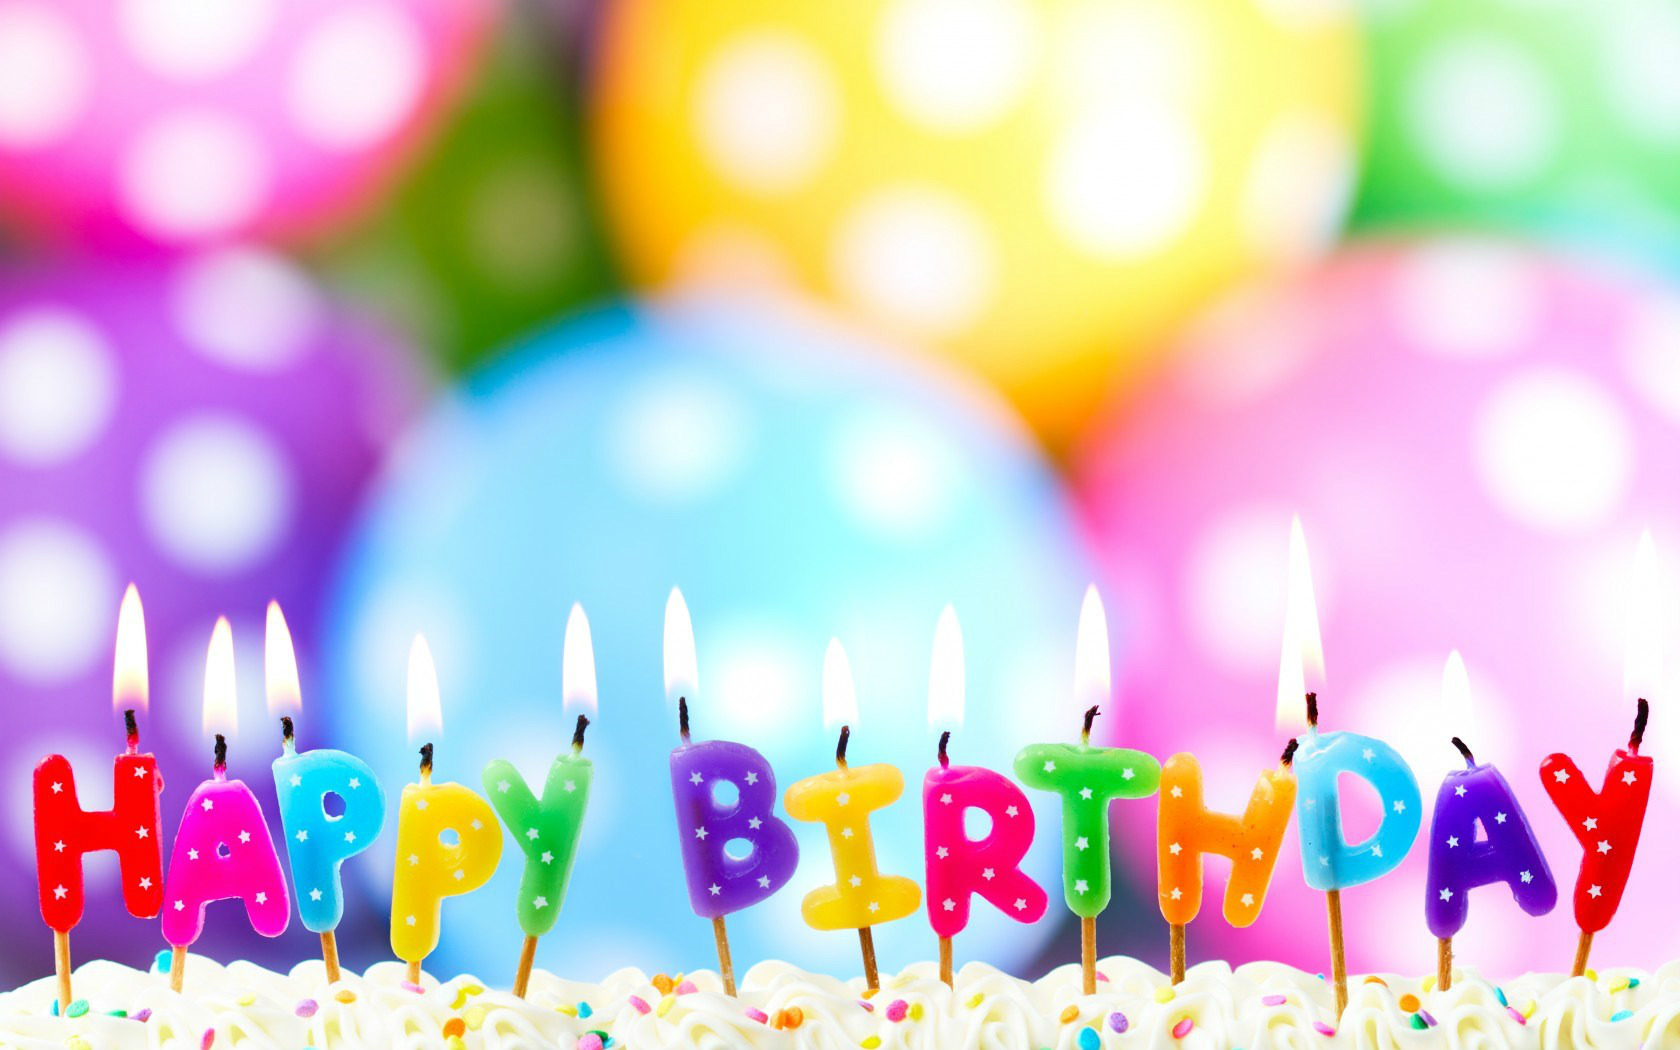 birthday wallpaper hd ; wallpaper-happy-birthday-hd-12